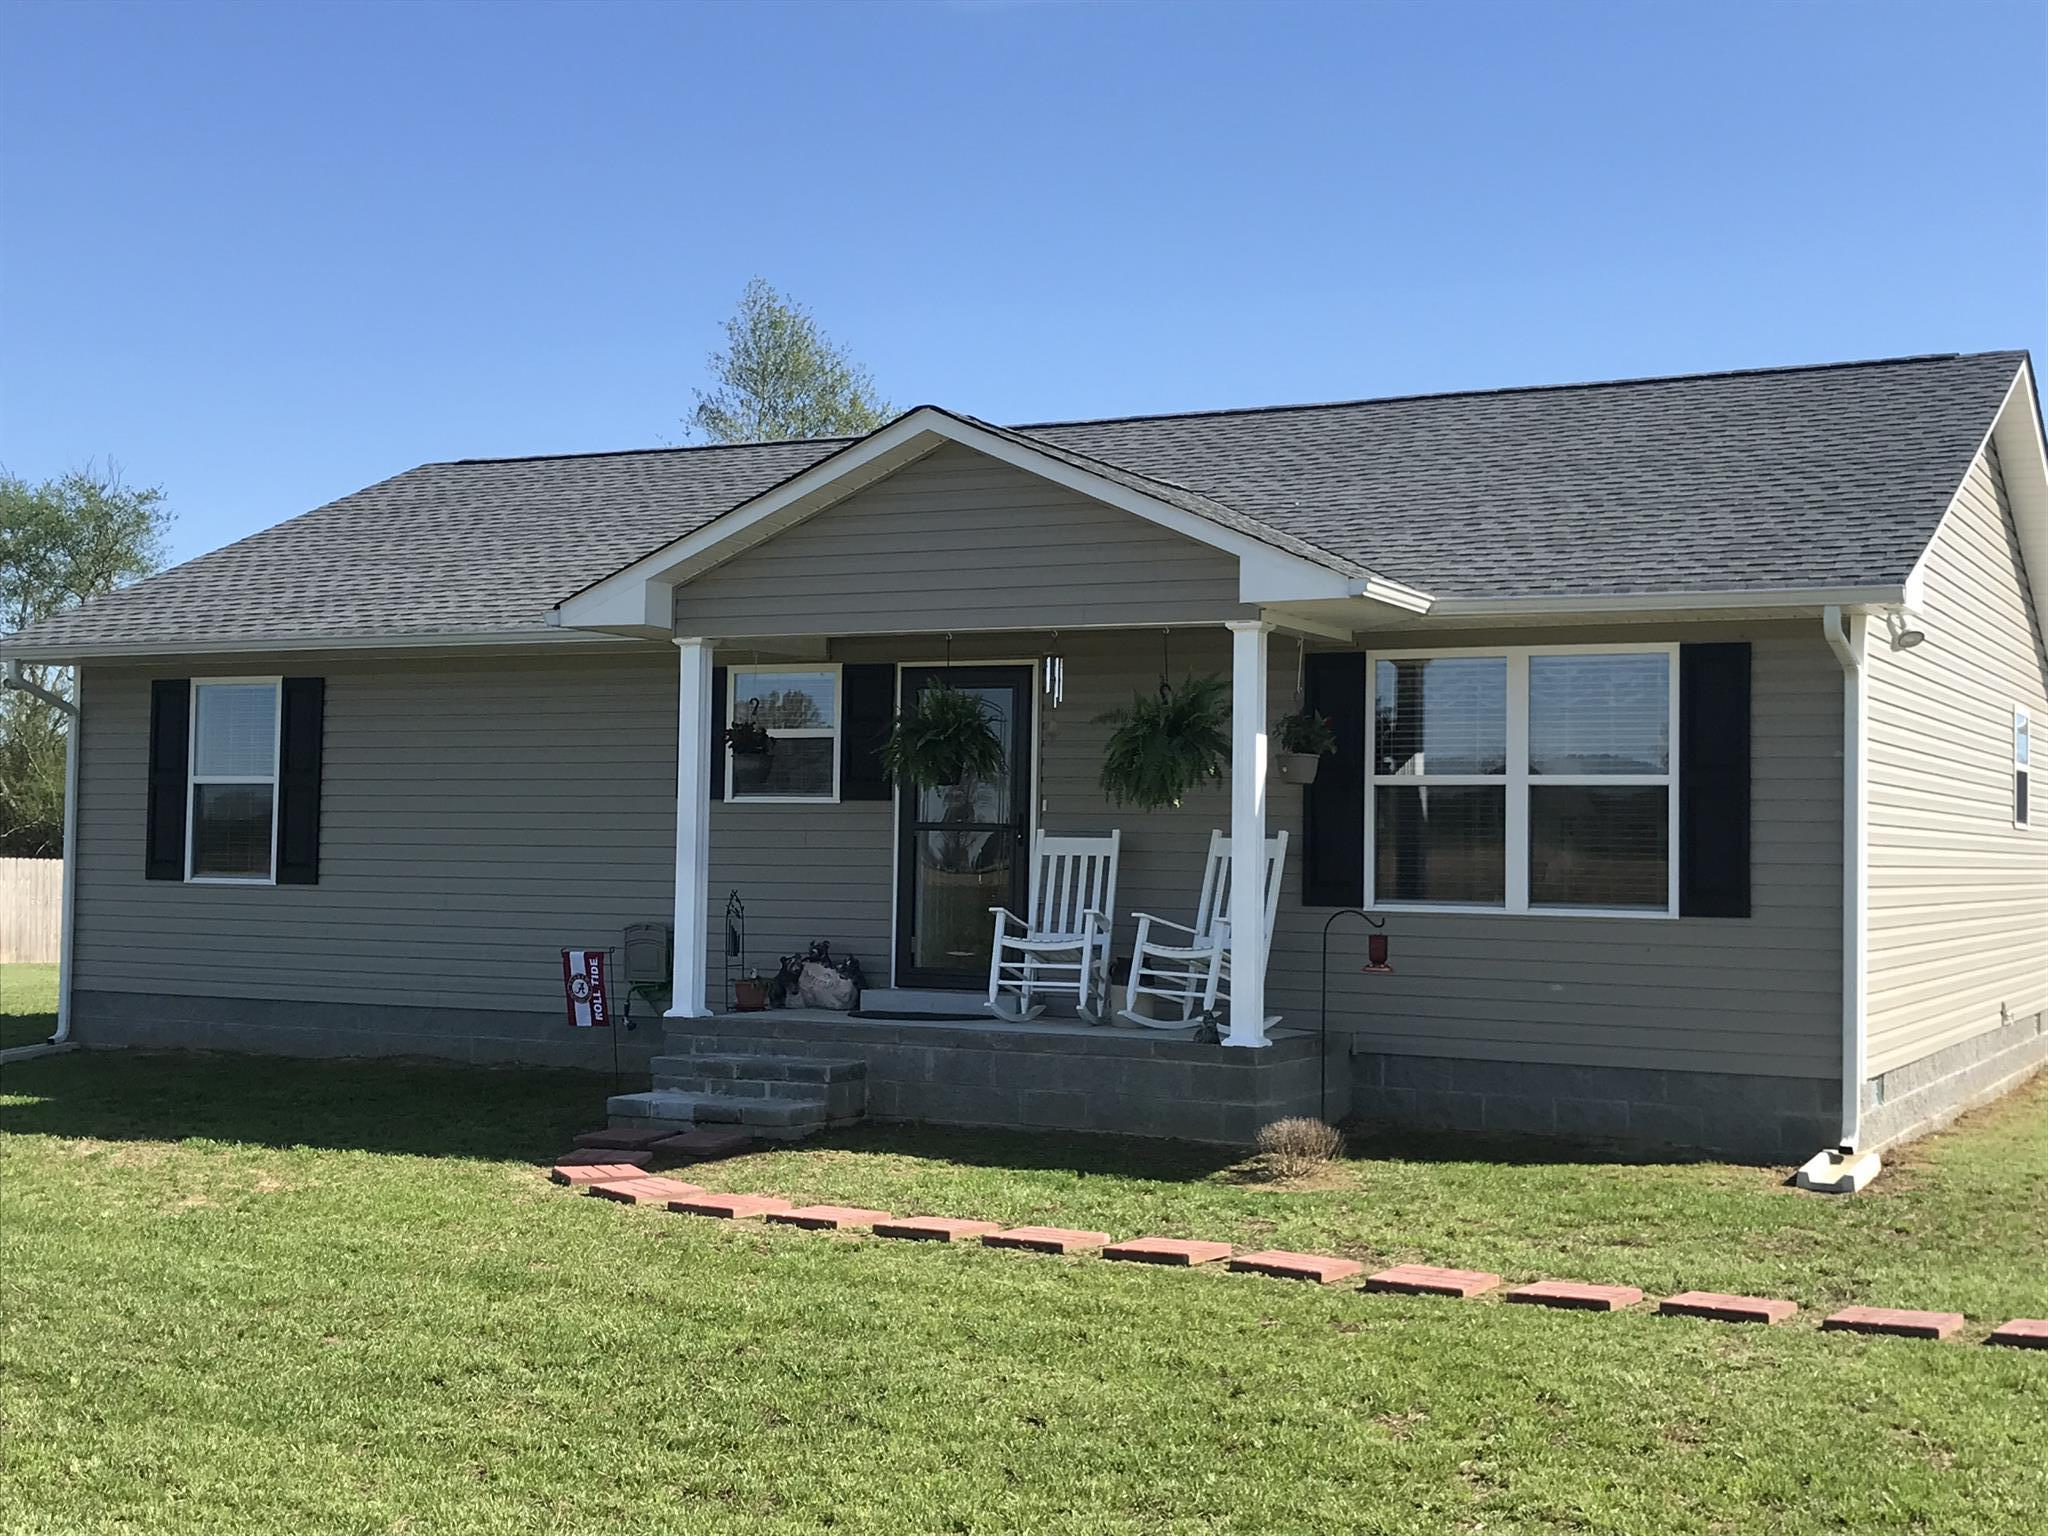 167 Michael Dr, Leoma, TN 38468 - Leoma, TN real estate listing